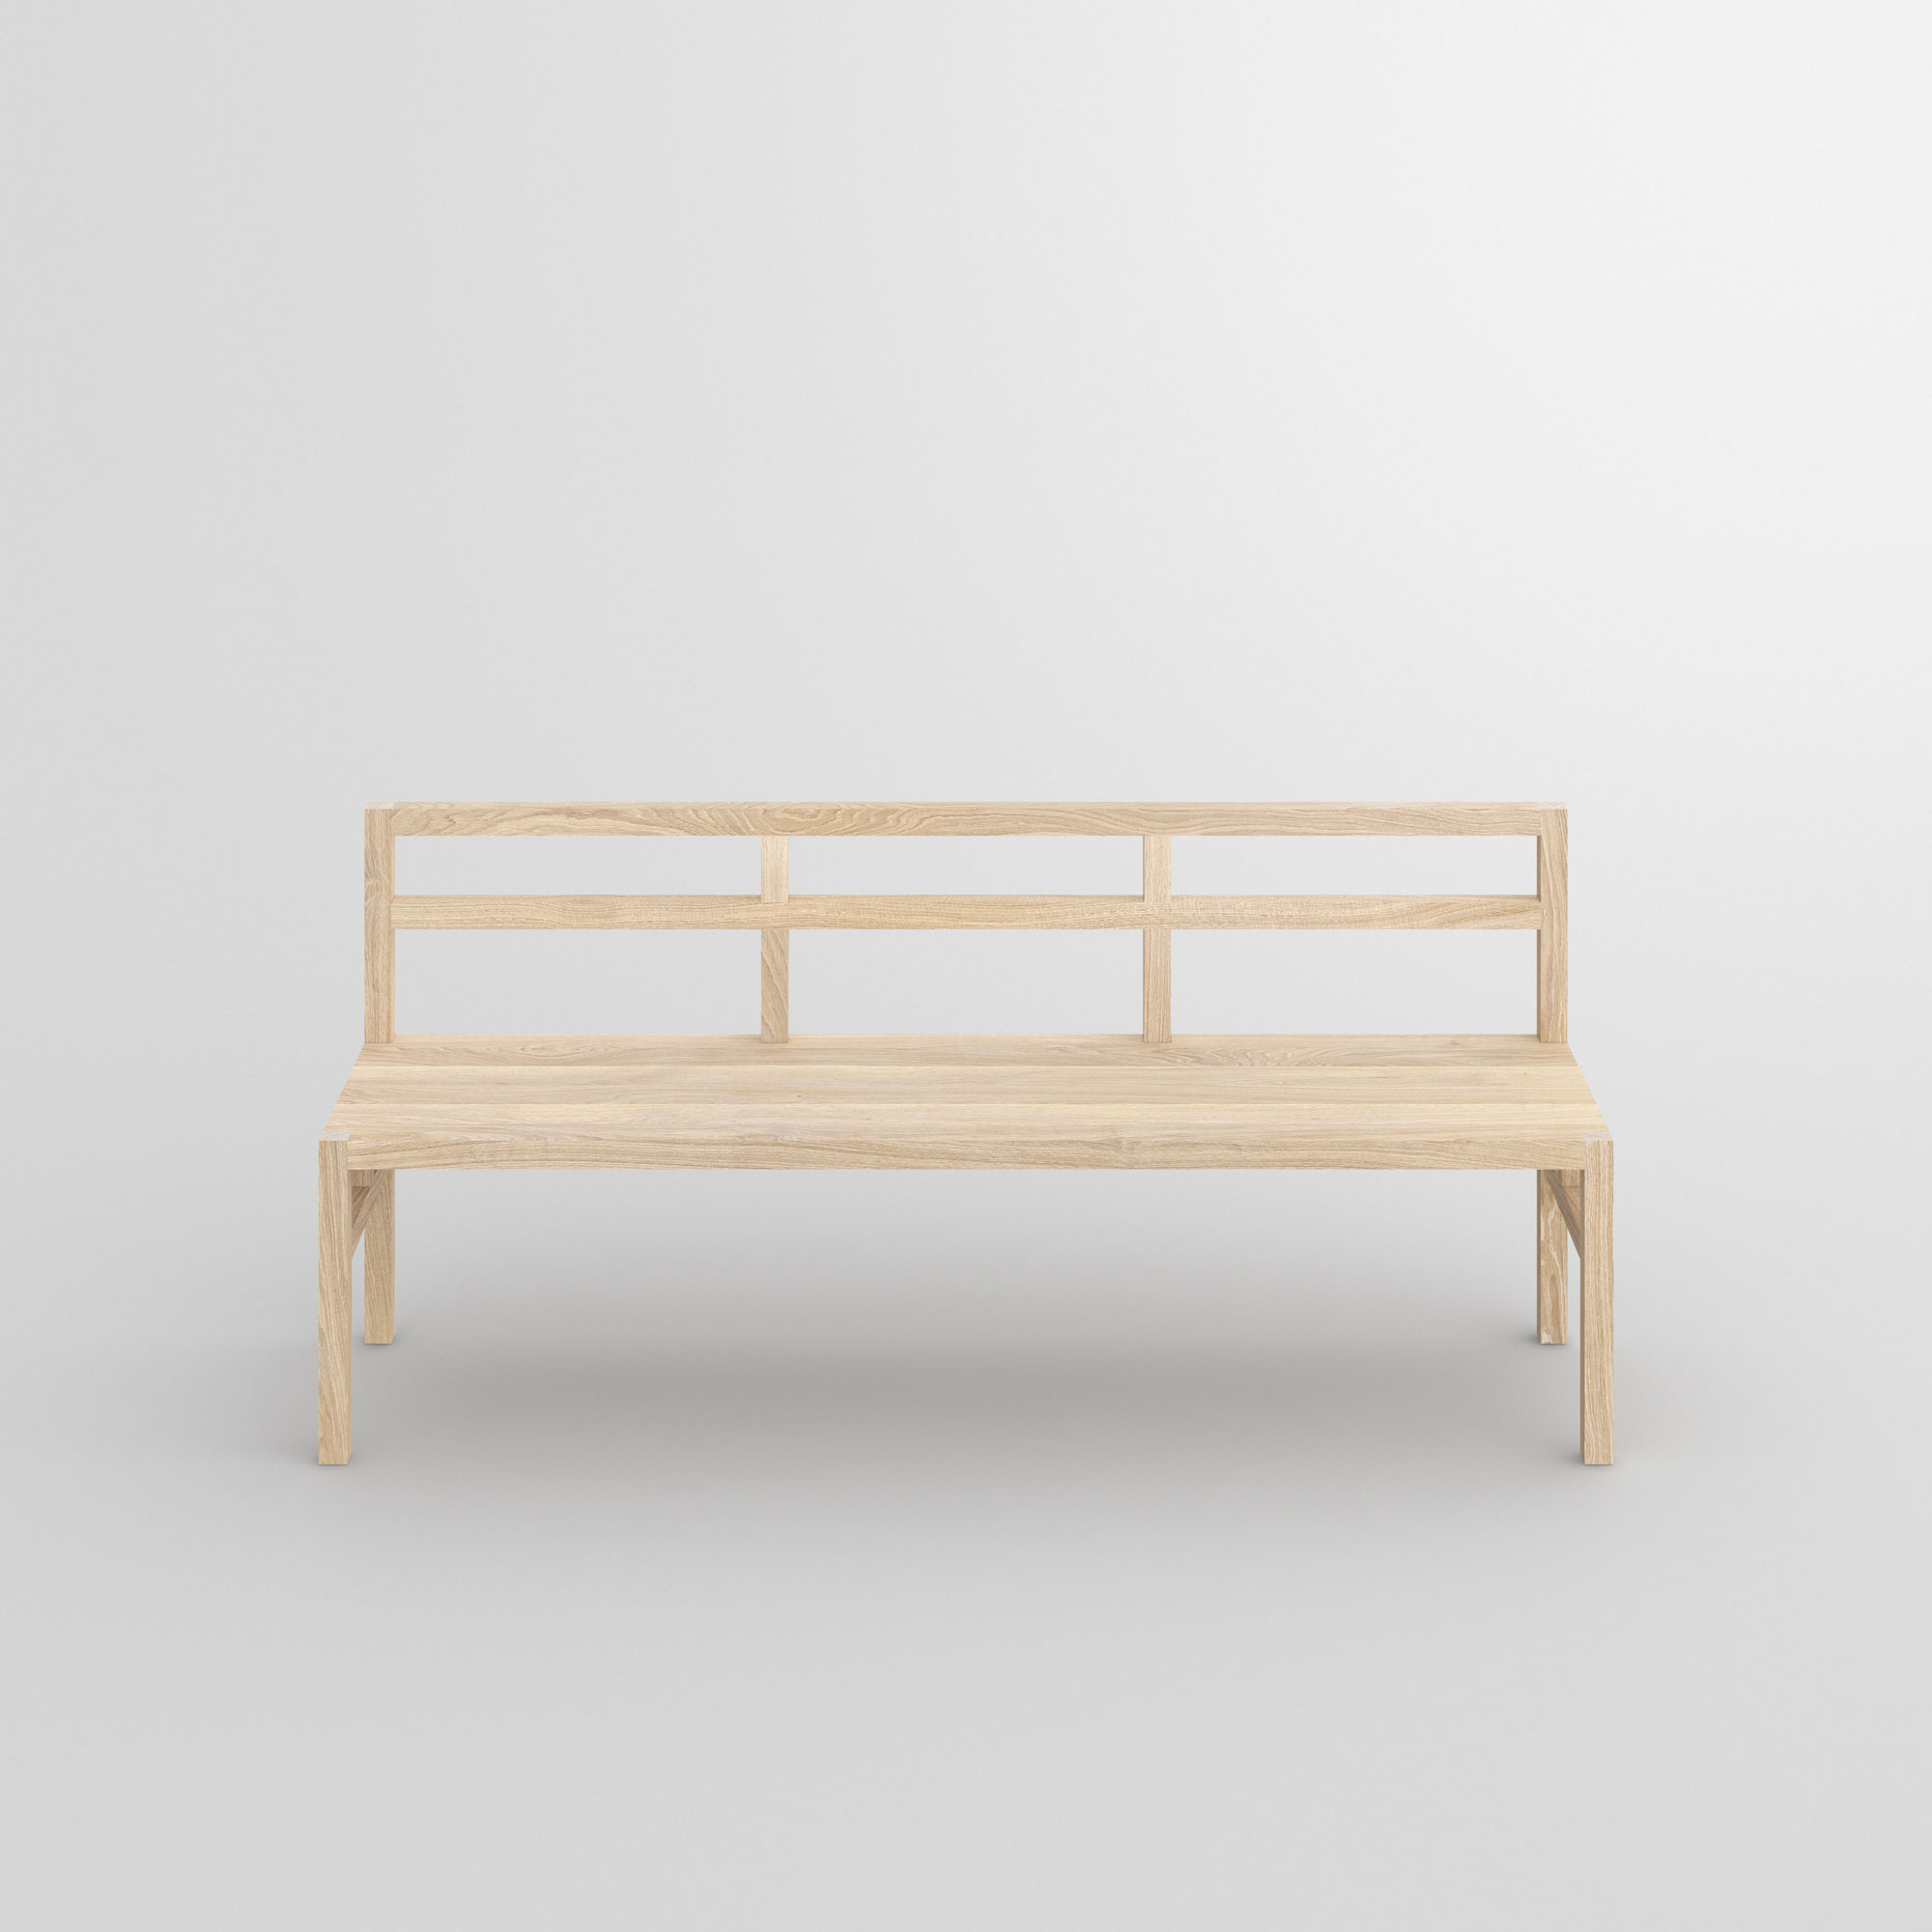 Bench with Backrest SENA RL cam3 custom made in solid wood by vitamin design